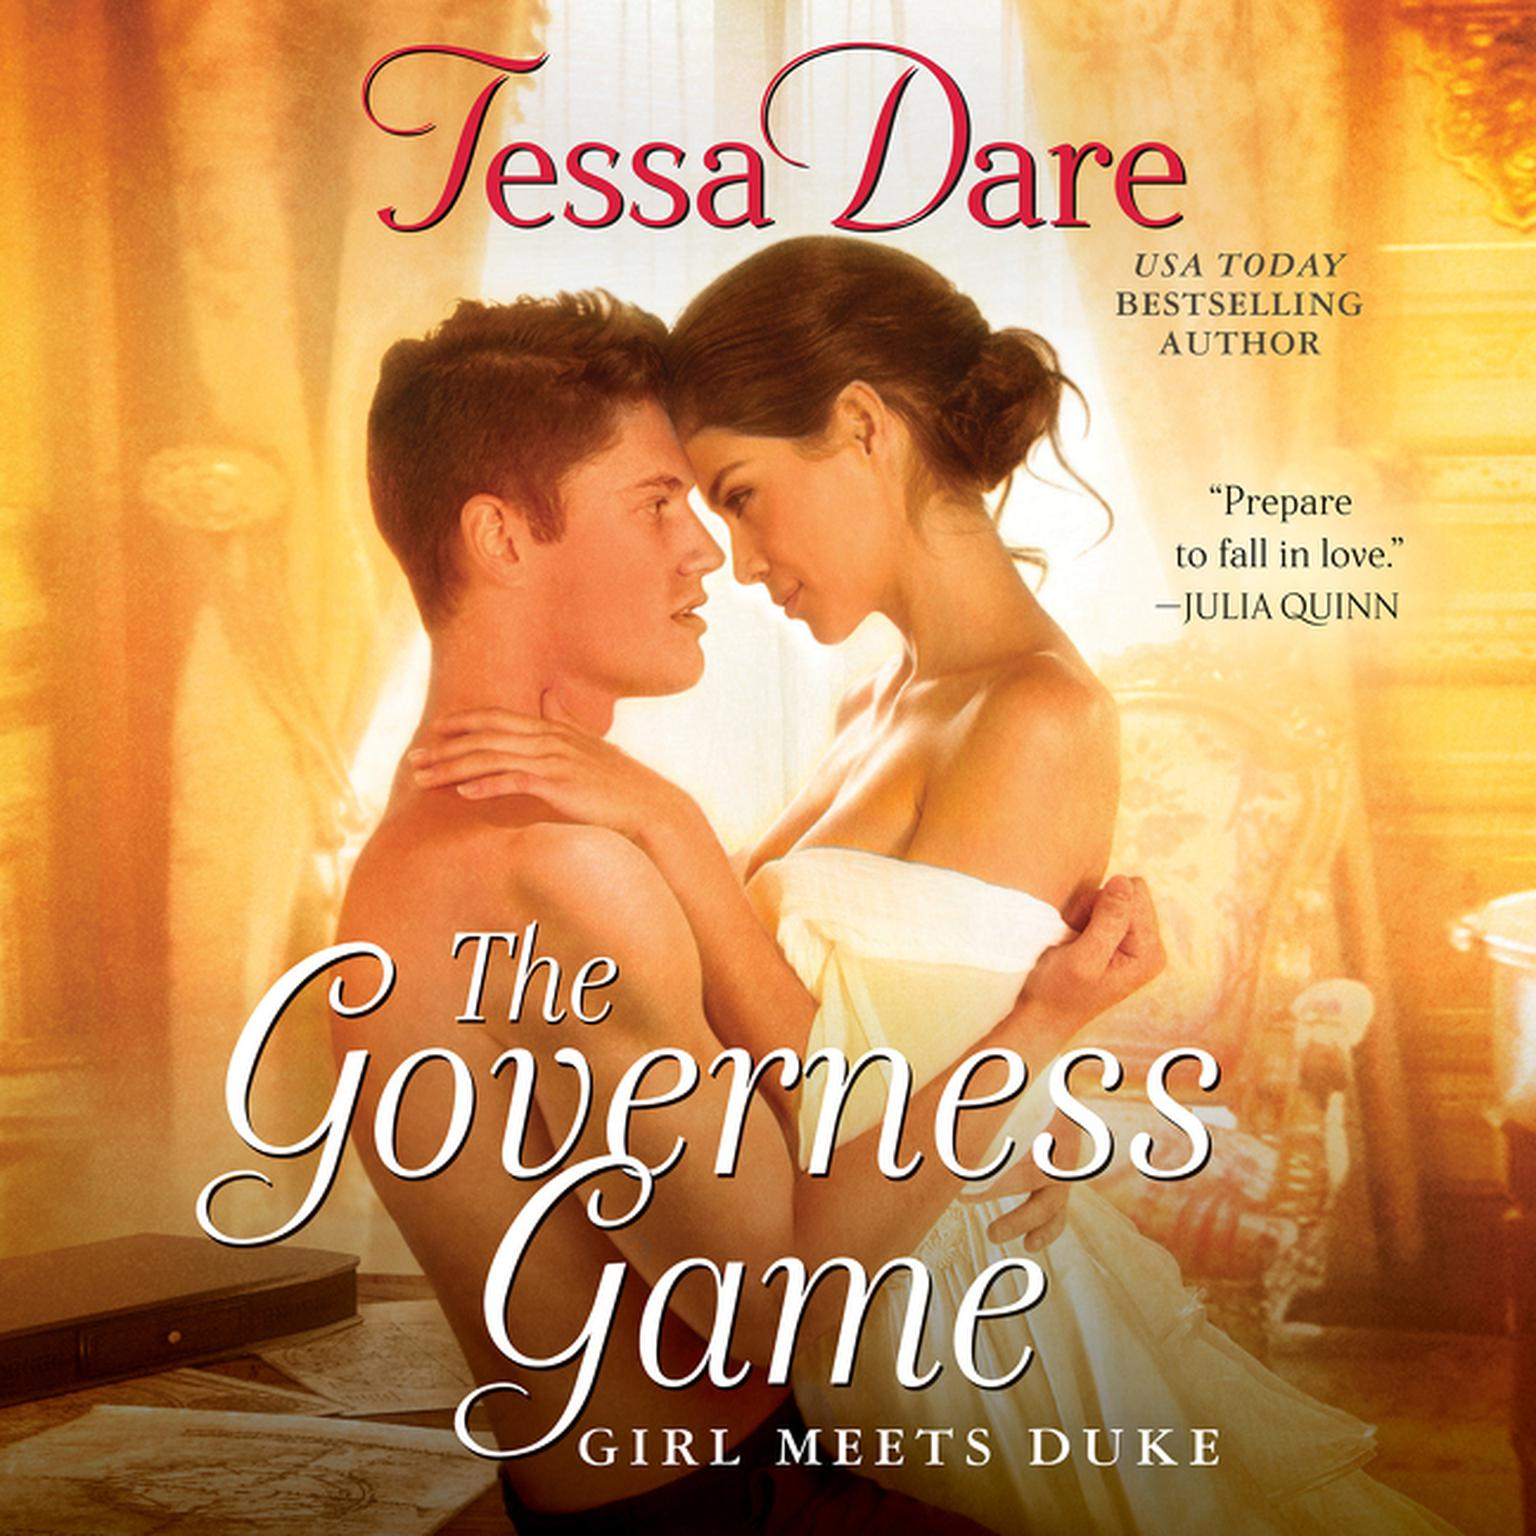 Printable The Governess Game: Girl Meets Duke Audiobook Cover Art